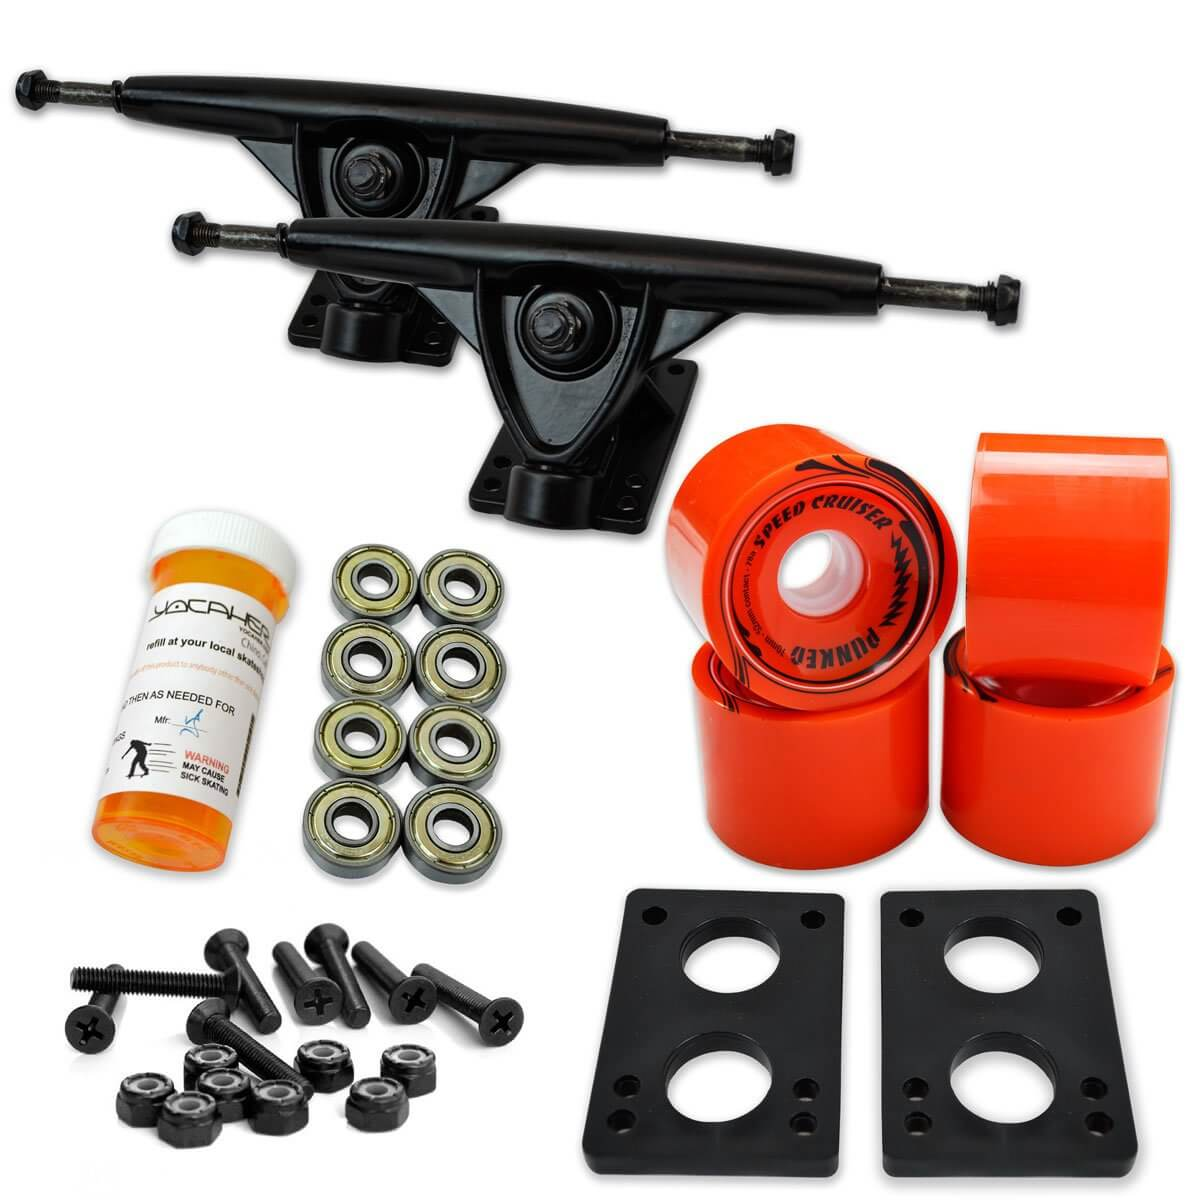 the best combo Yocaher Longboard trcuks set